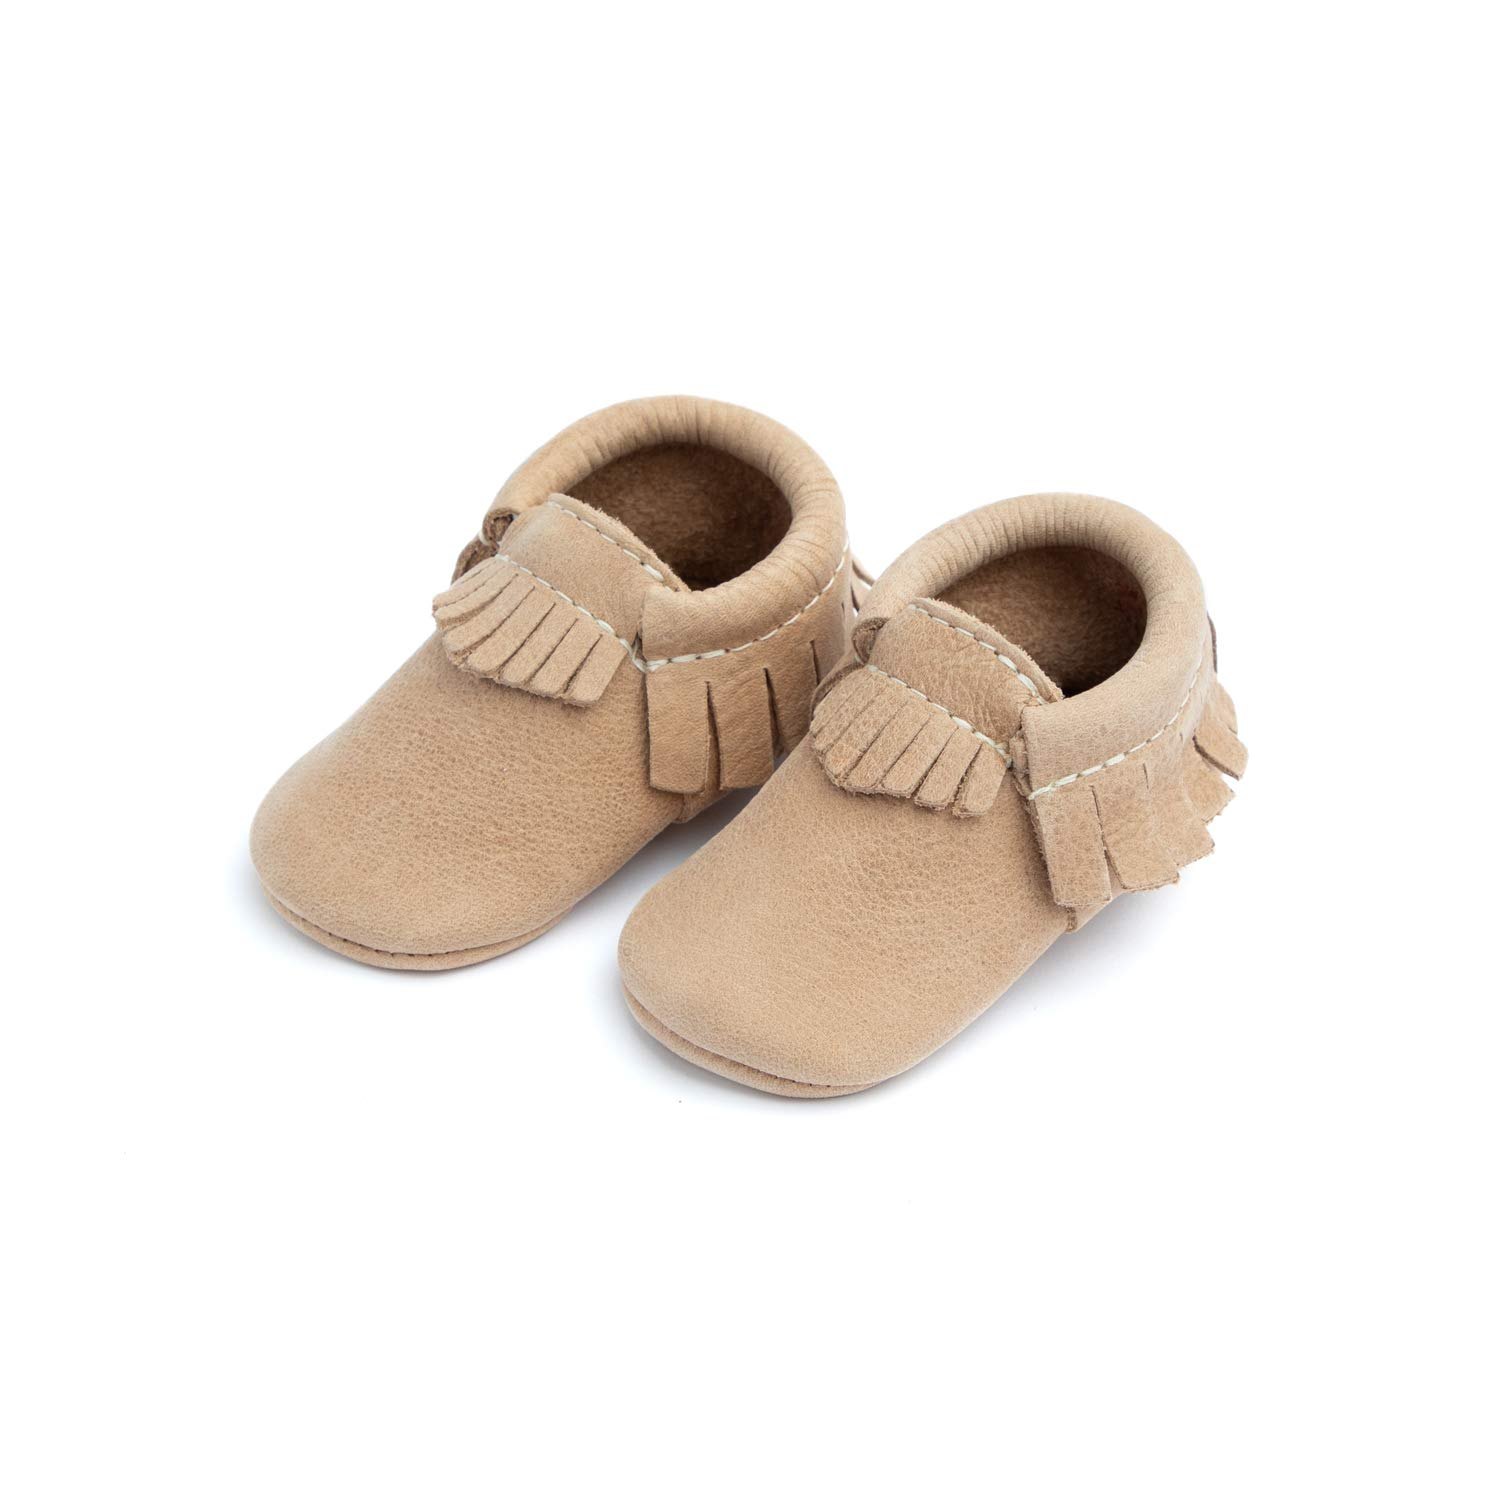 Freshly Picked - Soft Sole Leather Moccasins - Baby Girl Boy Shoes - Size 4 Weathered Brown by Freshly Picked